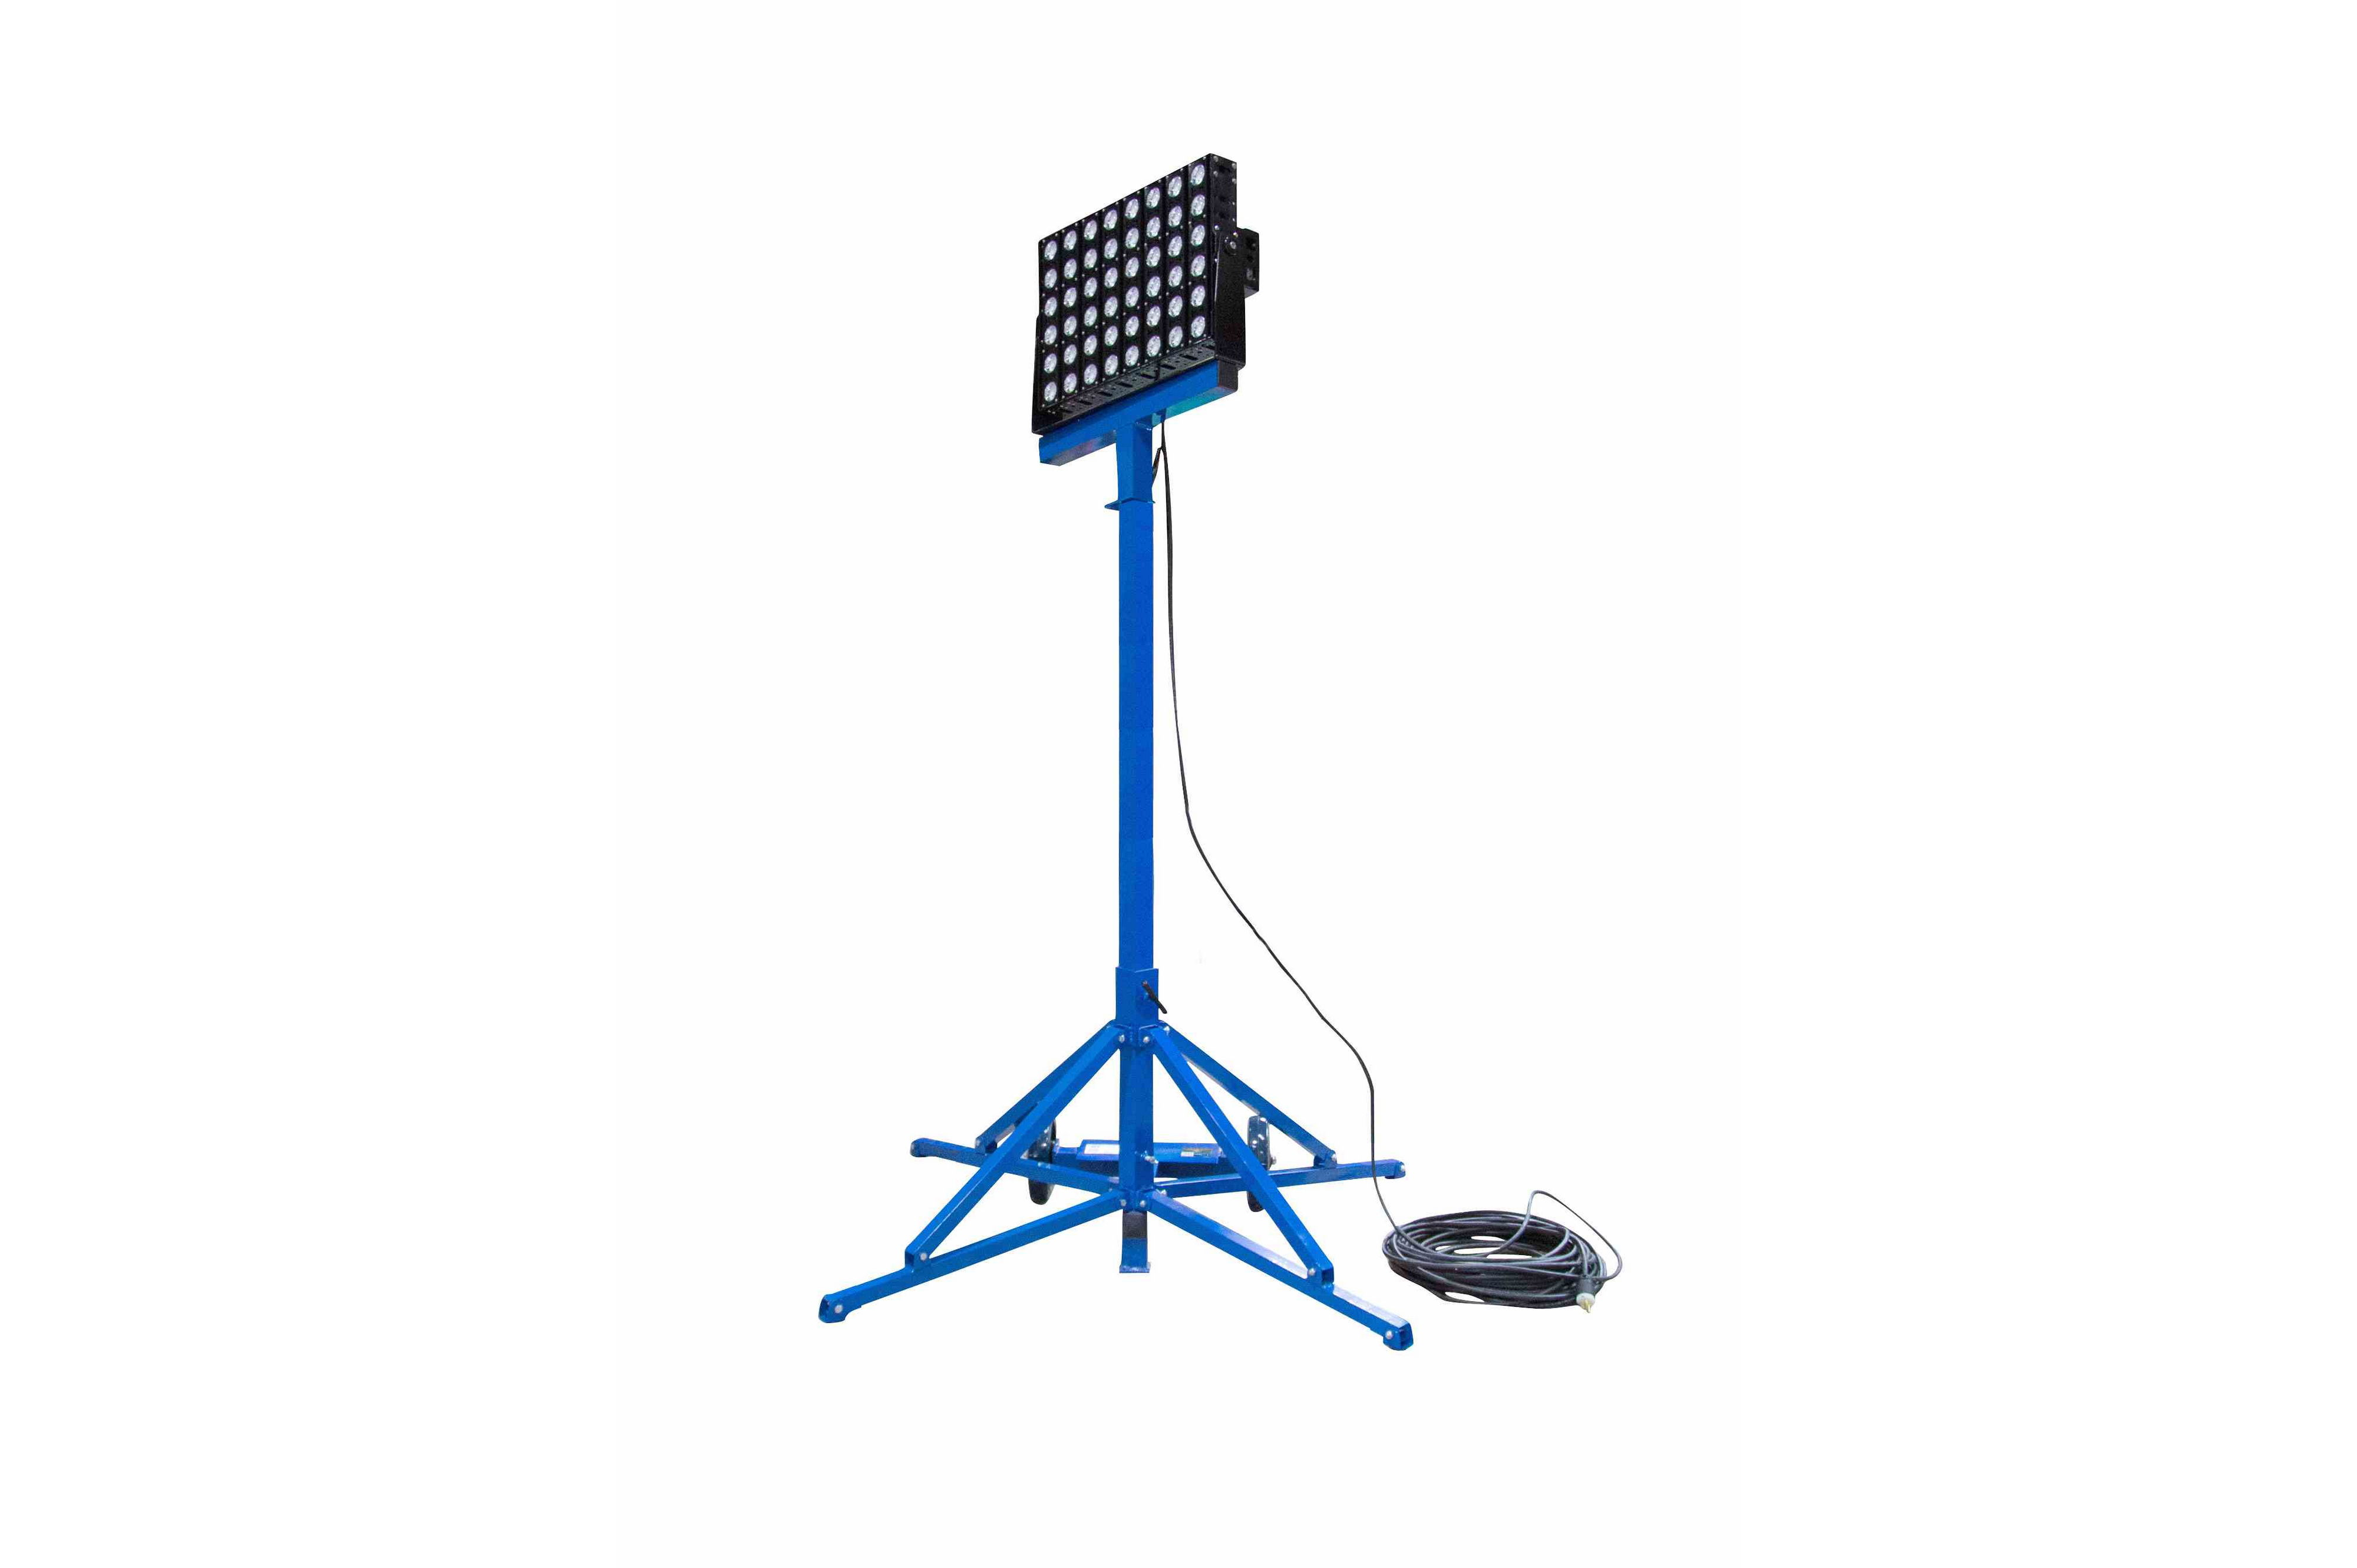 480 Watt Work Area Led Light Tower